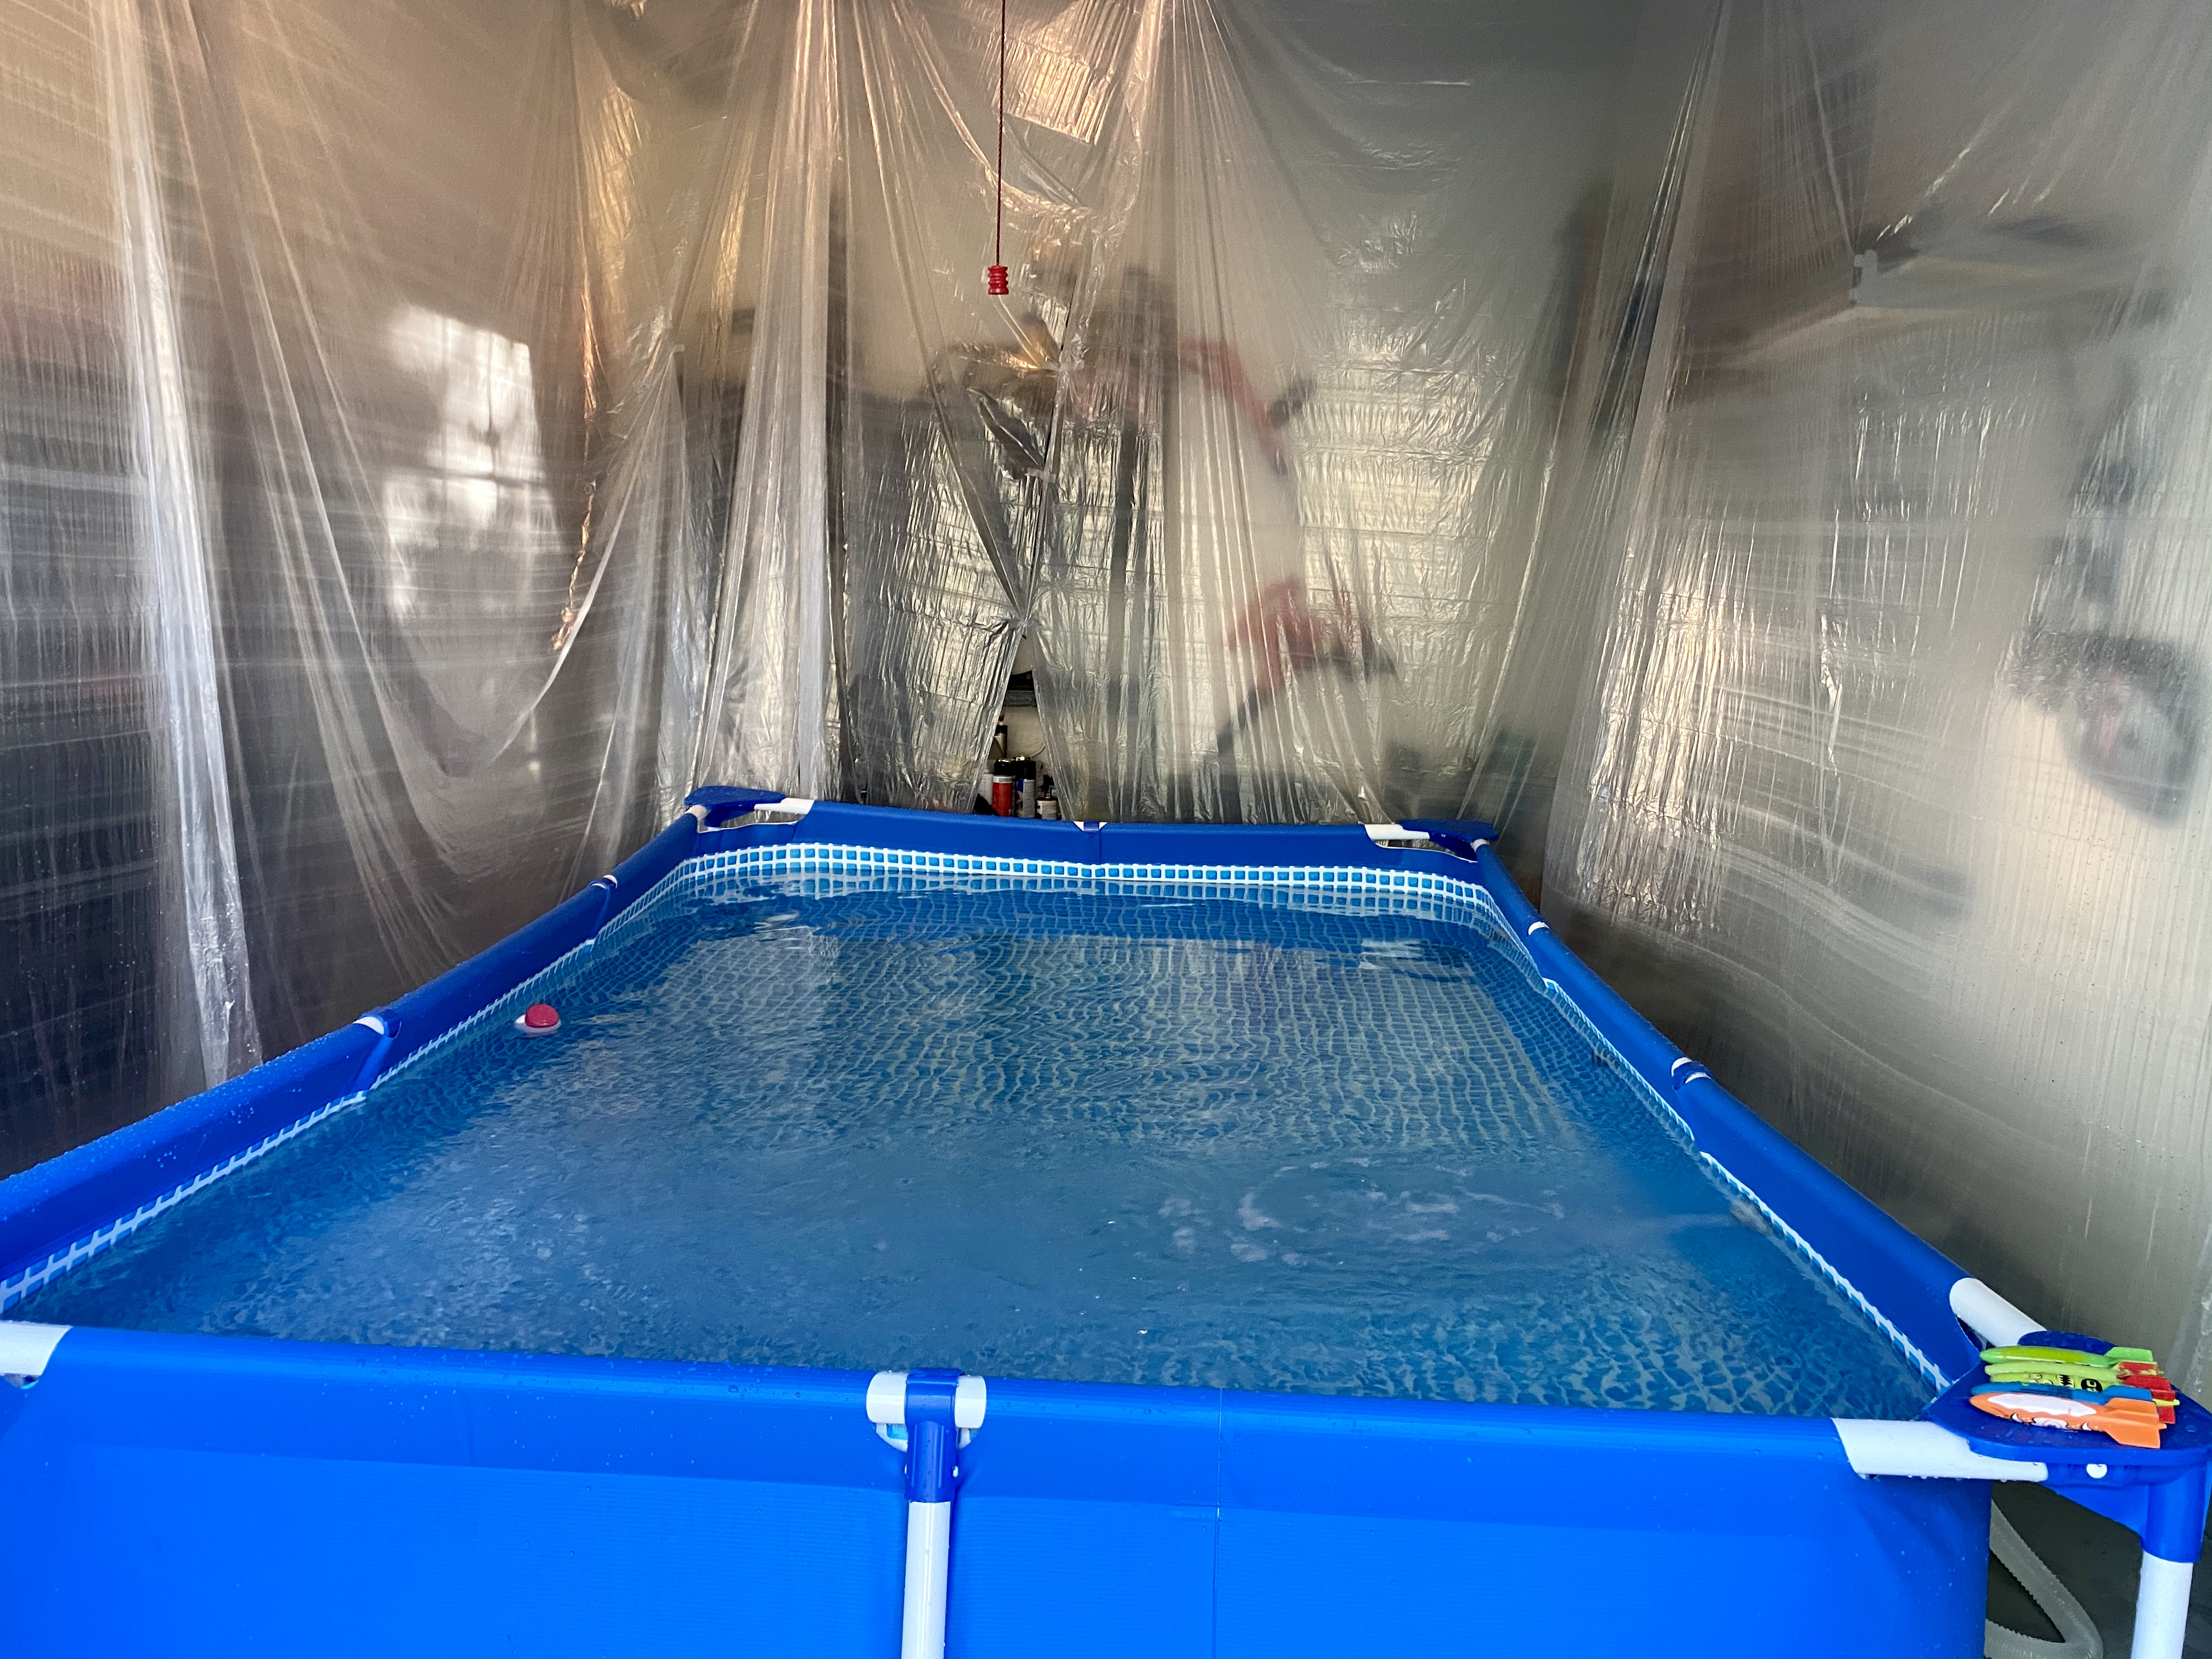 DIY Endless Pool with an adjustable tether